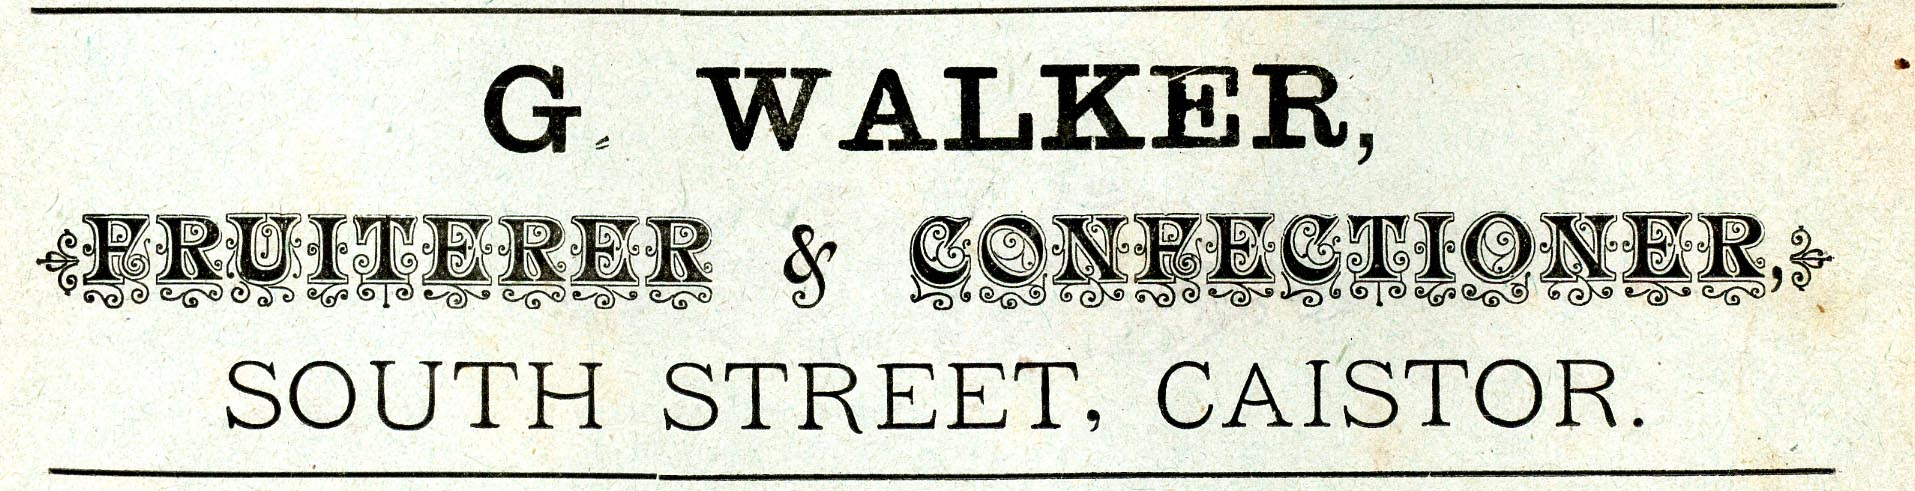 Advert 1904 G walker.jpg